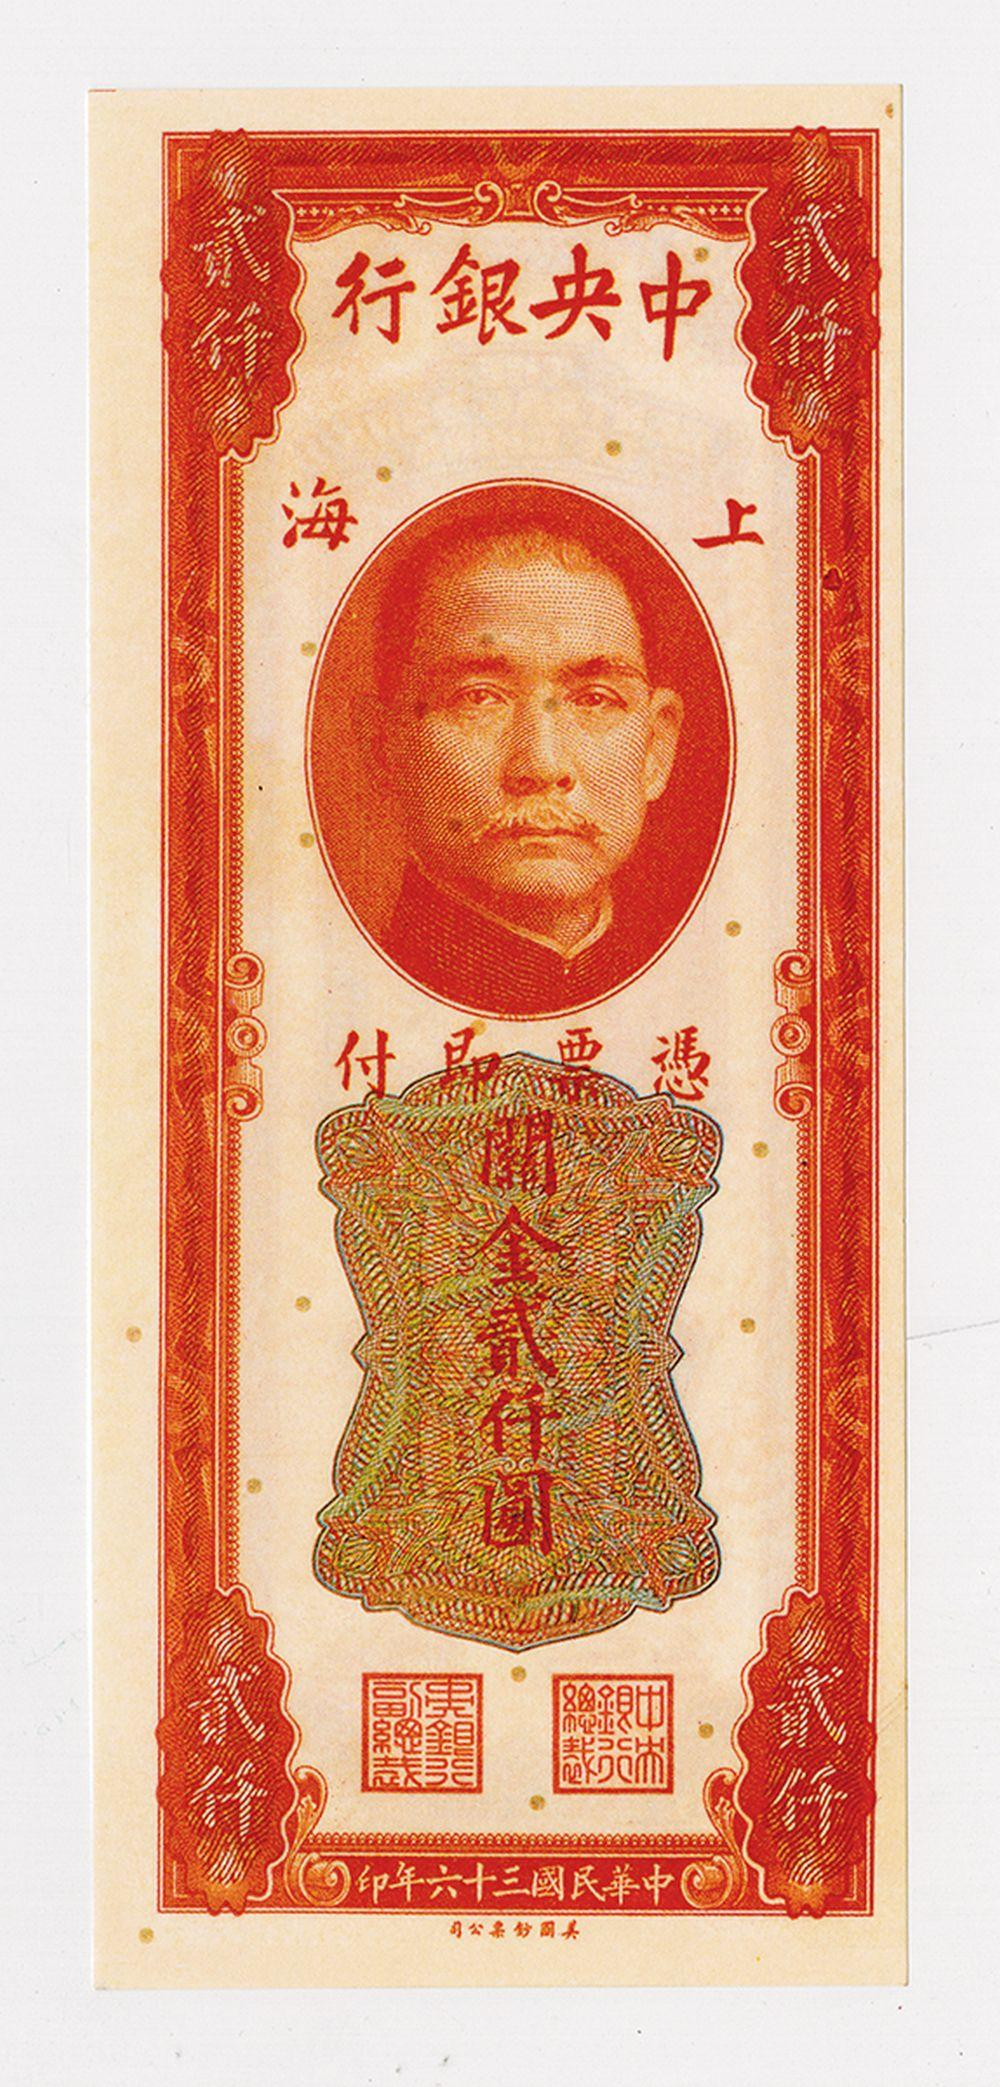 Central Bank of China, 1947 Contemporary Litho Counterfeit.